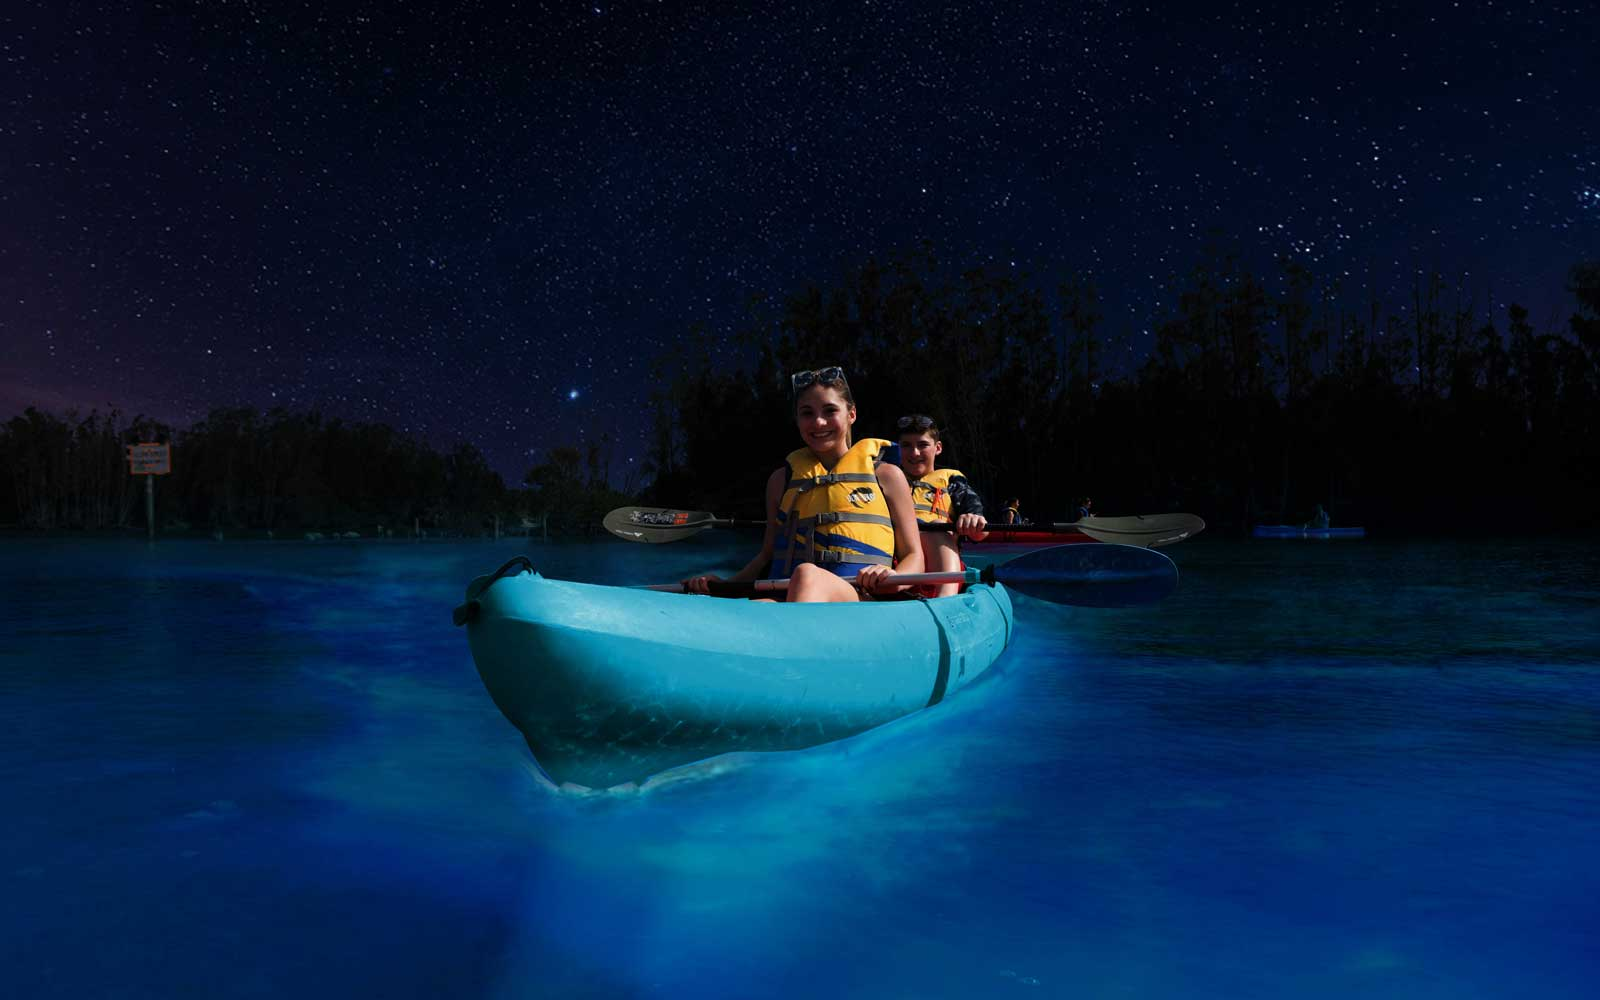 Night tours let you kayak over illuminated waters.